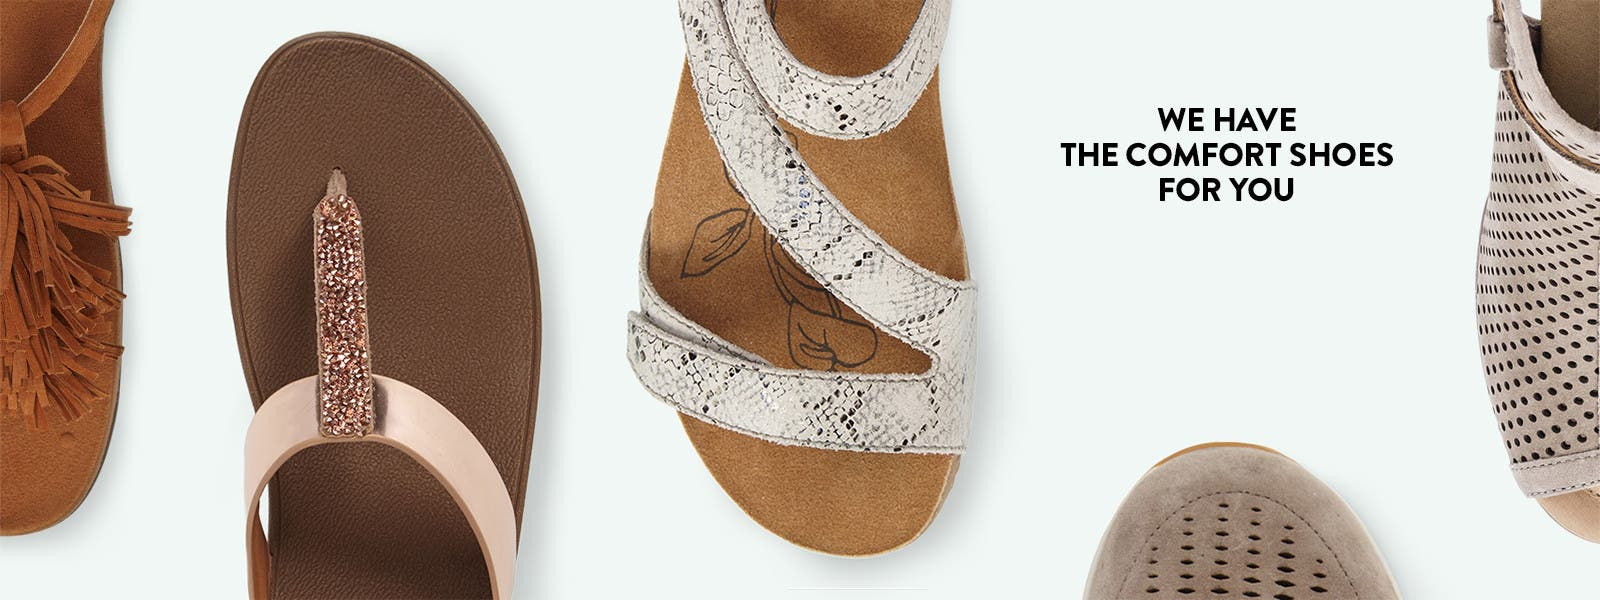 Women's sandals with removable insoles - We Have The Comfort Shoes For You